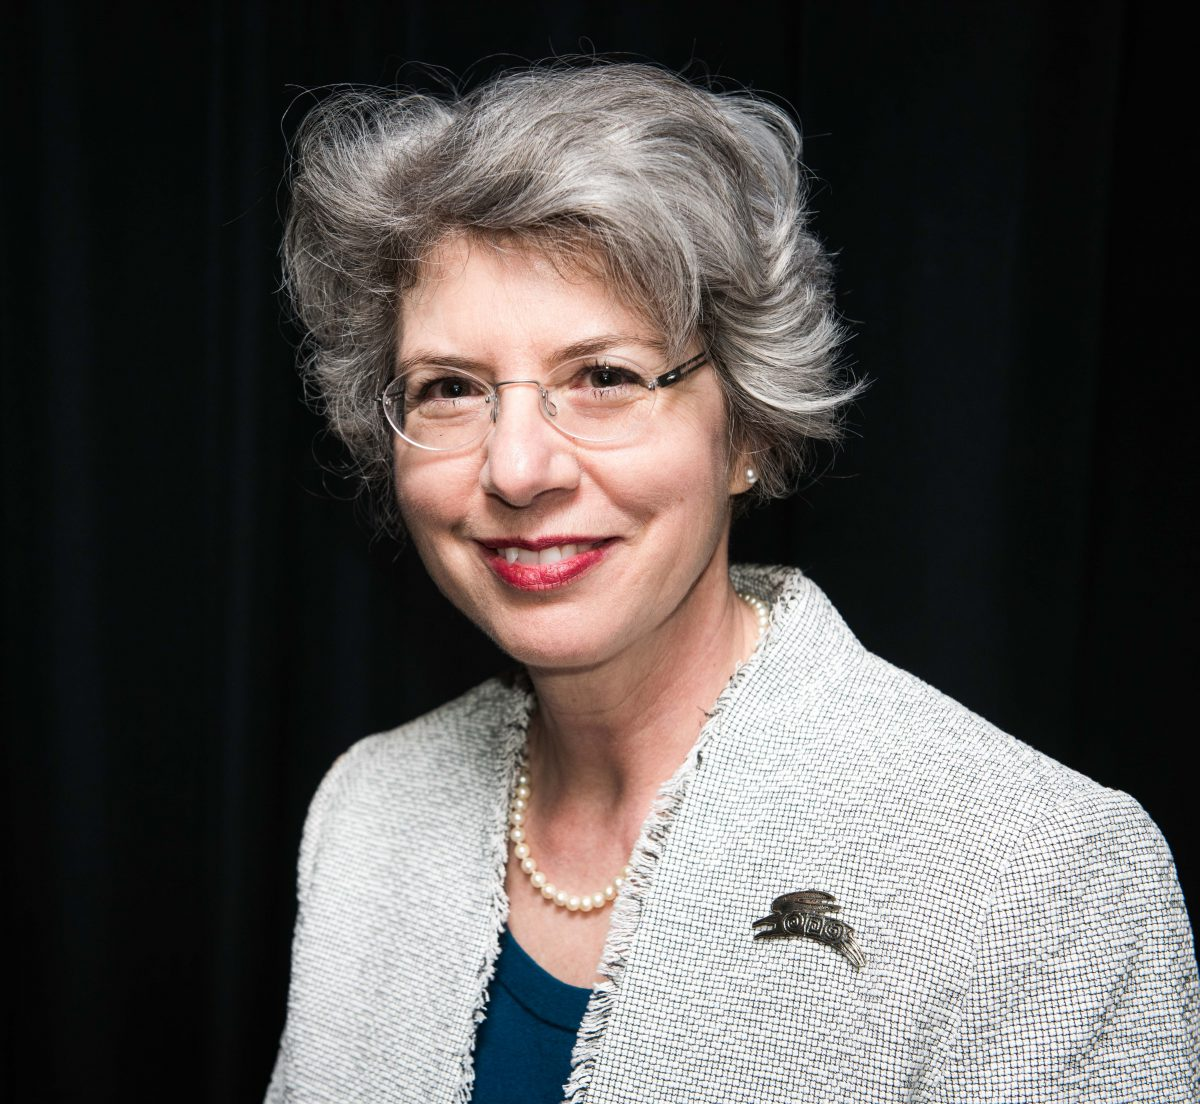 Portrait of a woman with grey hair smiling, wearing glasses and a grey blazer.